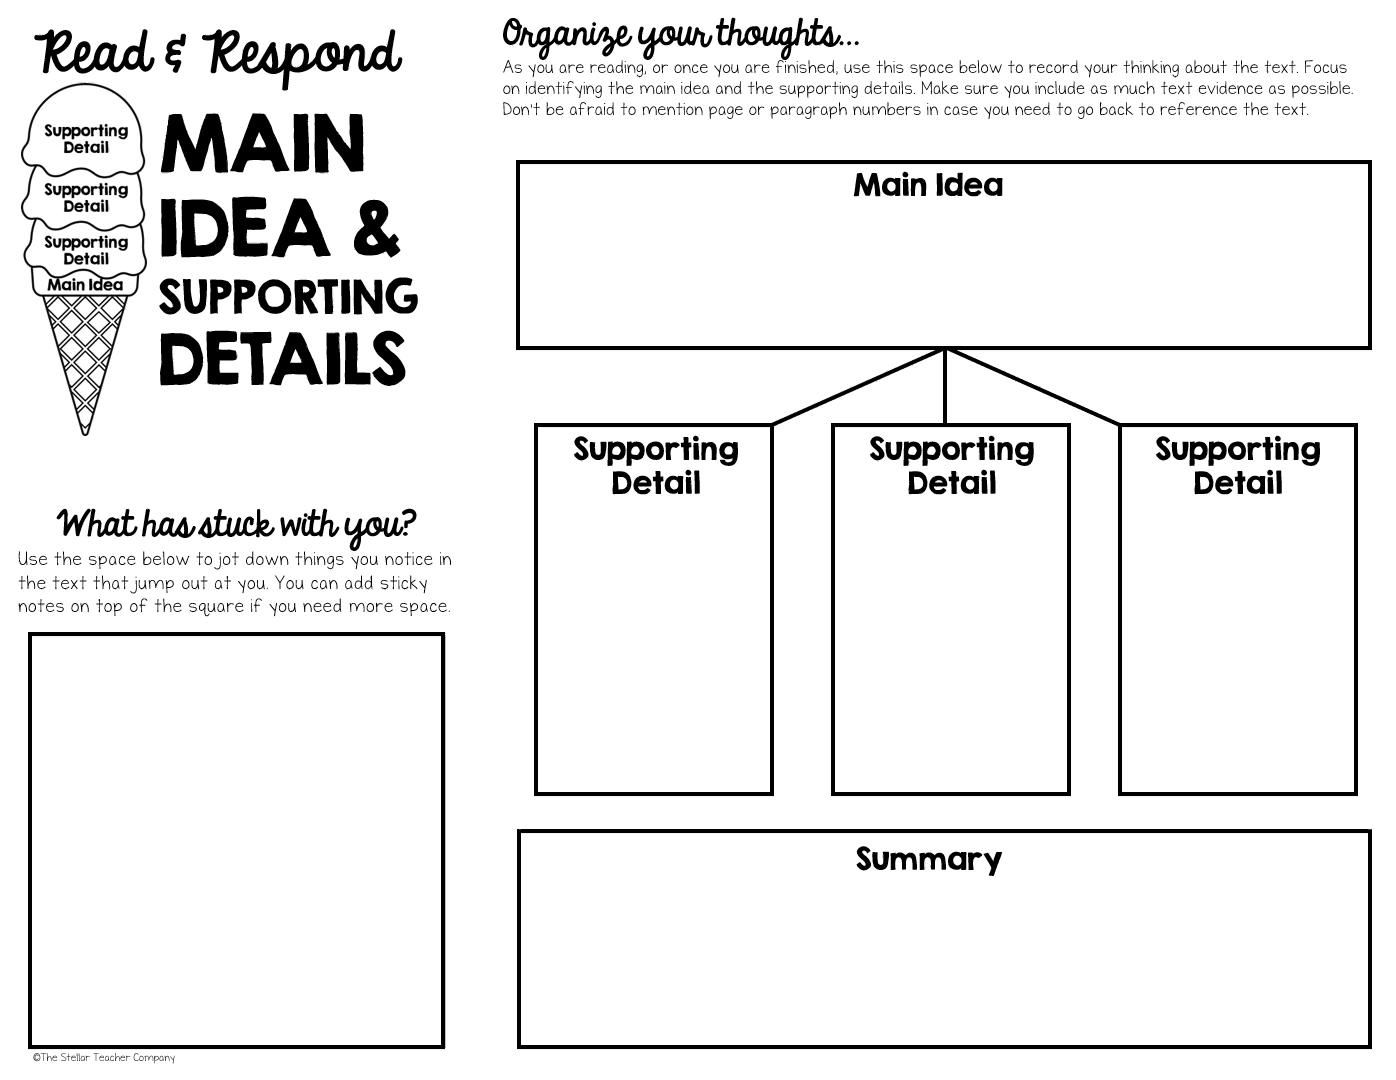 Reading Response Graphic Organizers For Non Fiction Texts Video Video Reading Response Graphic Organizers Reading Graphic Organizers Narrative Writing Graphic Organizers